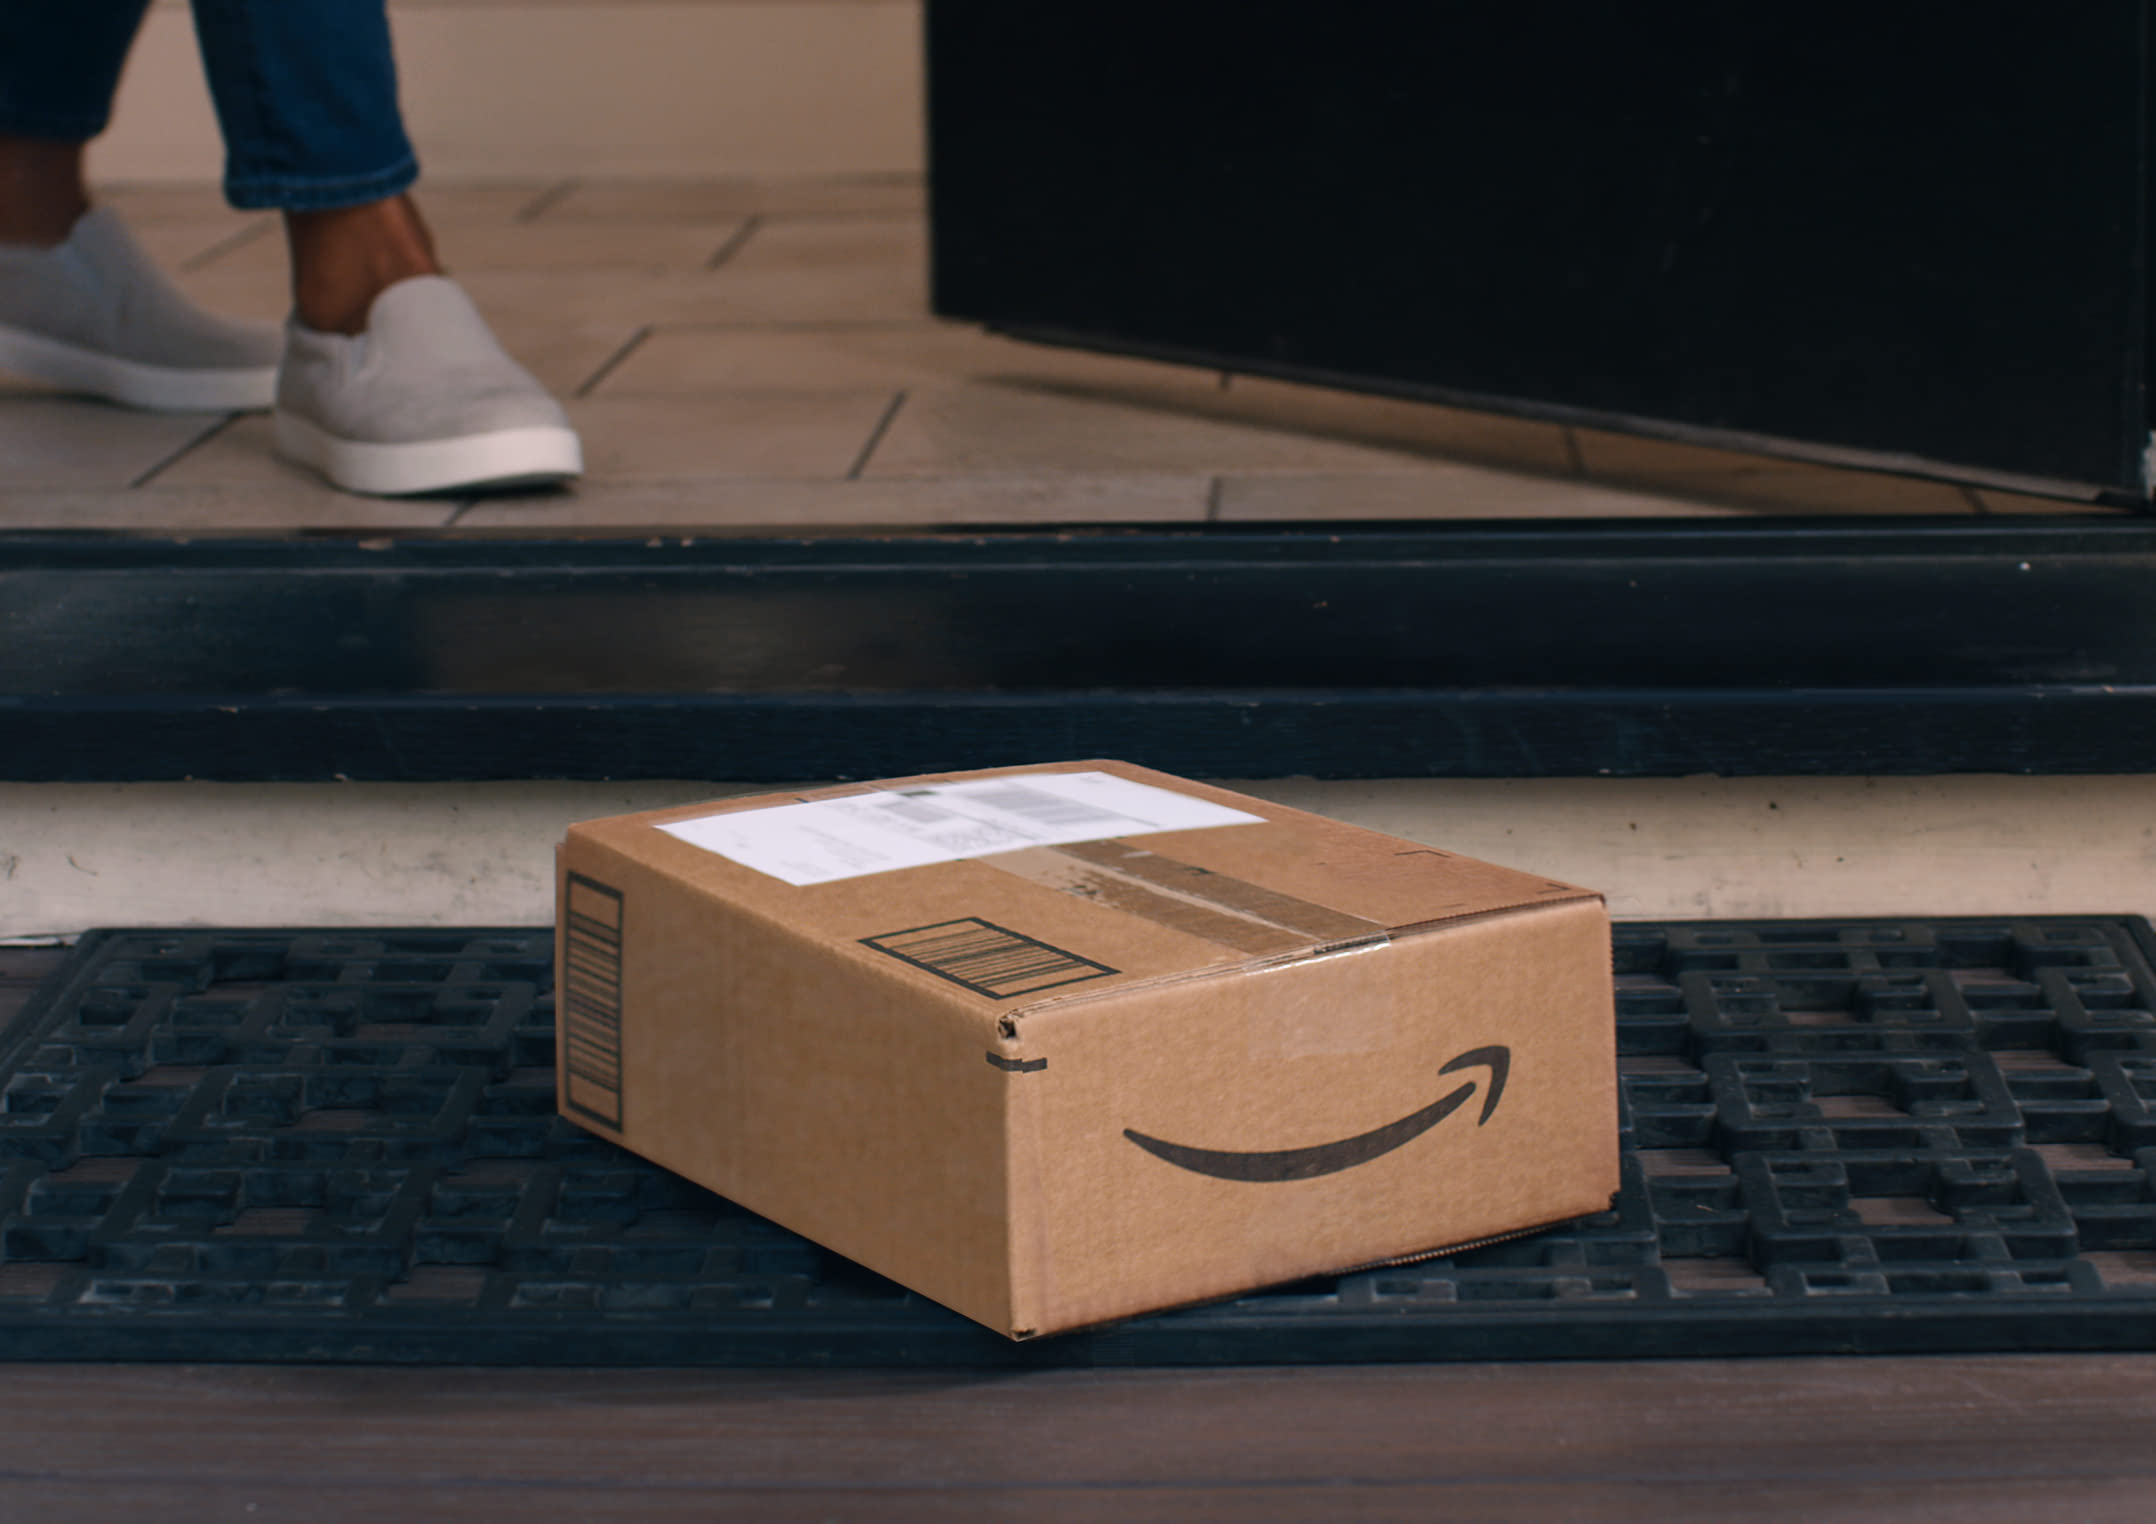 Monthly deliveries with Amazon Pharmacy